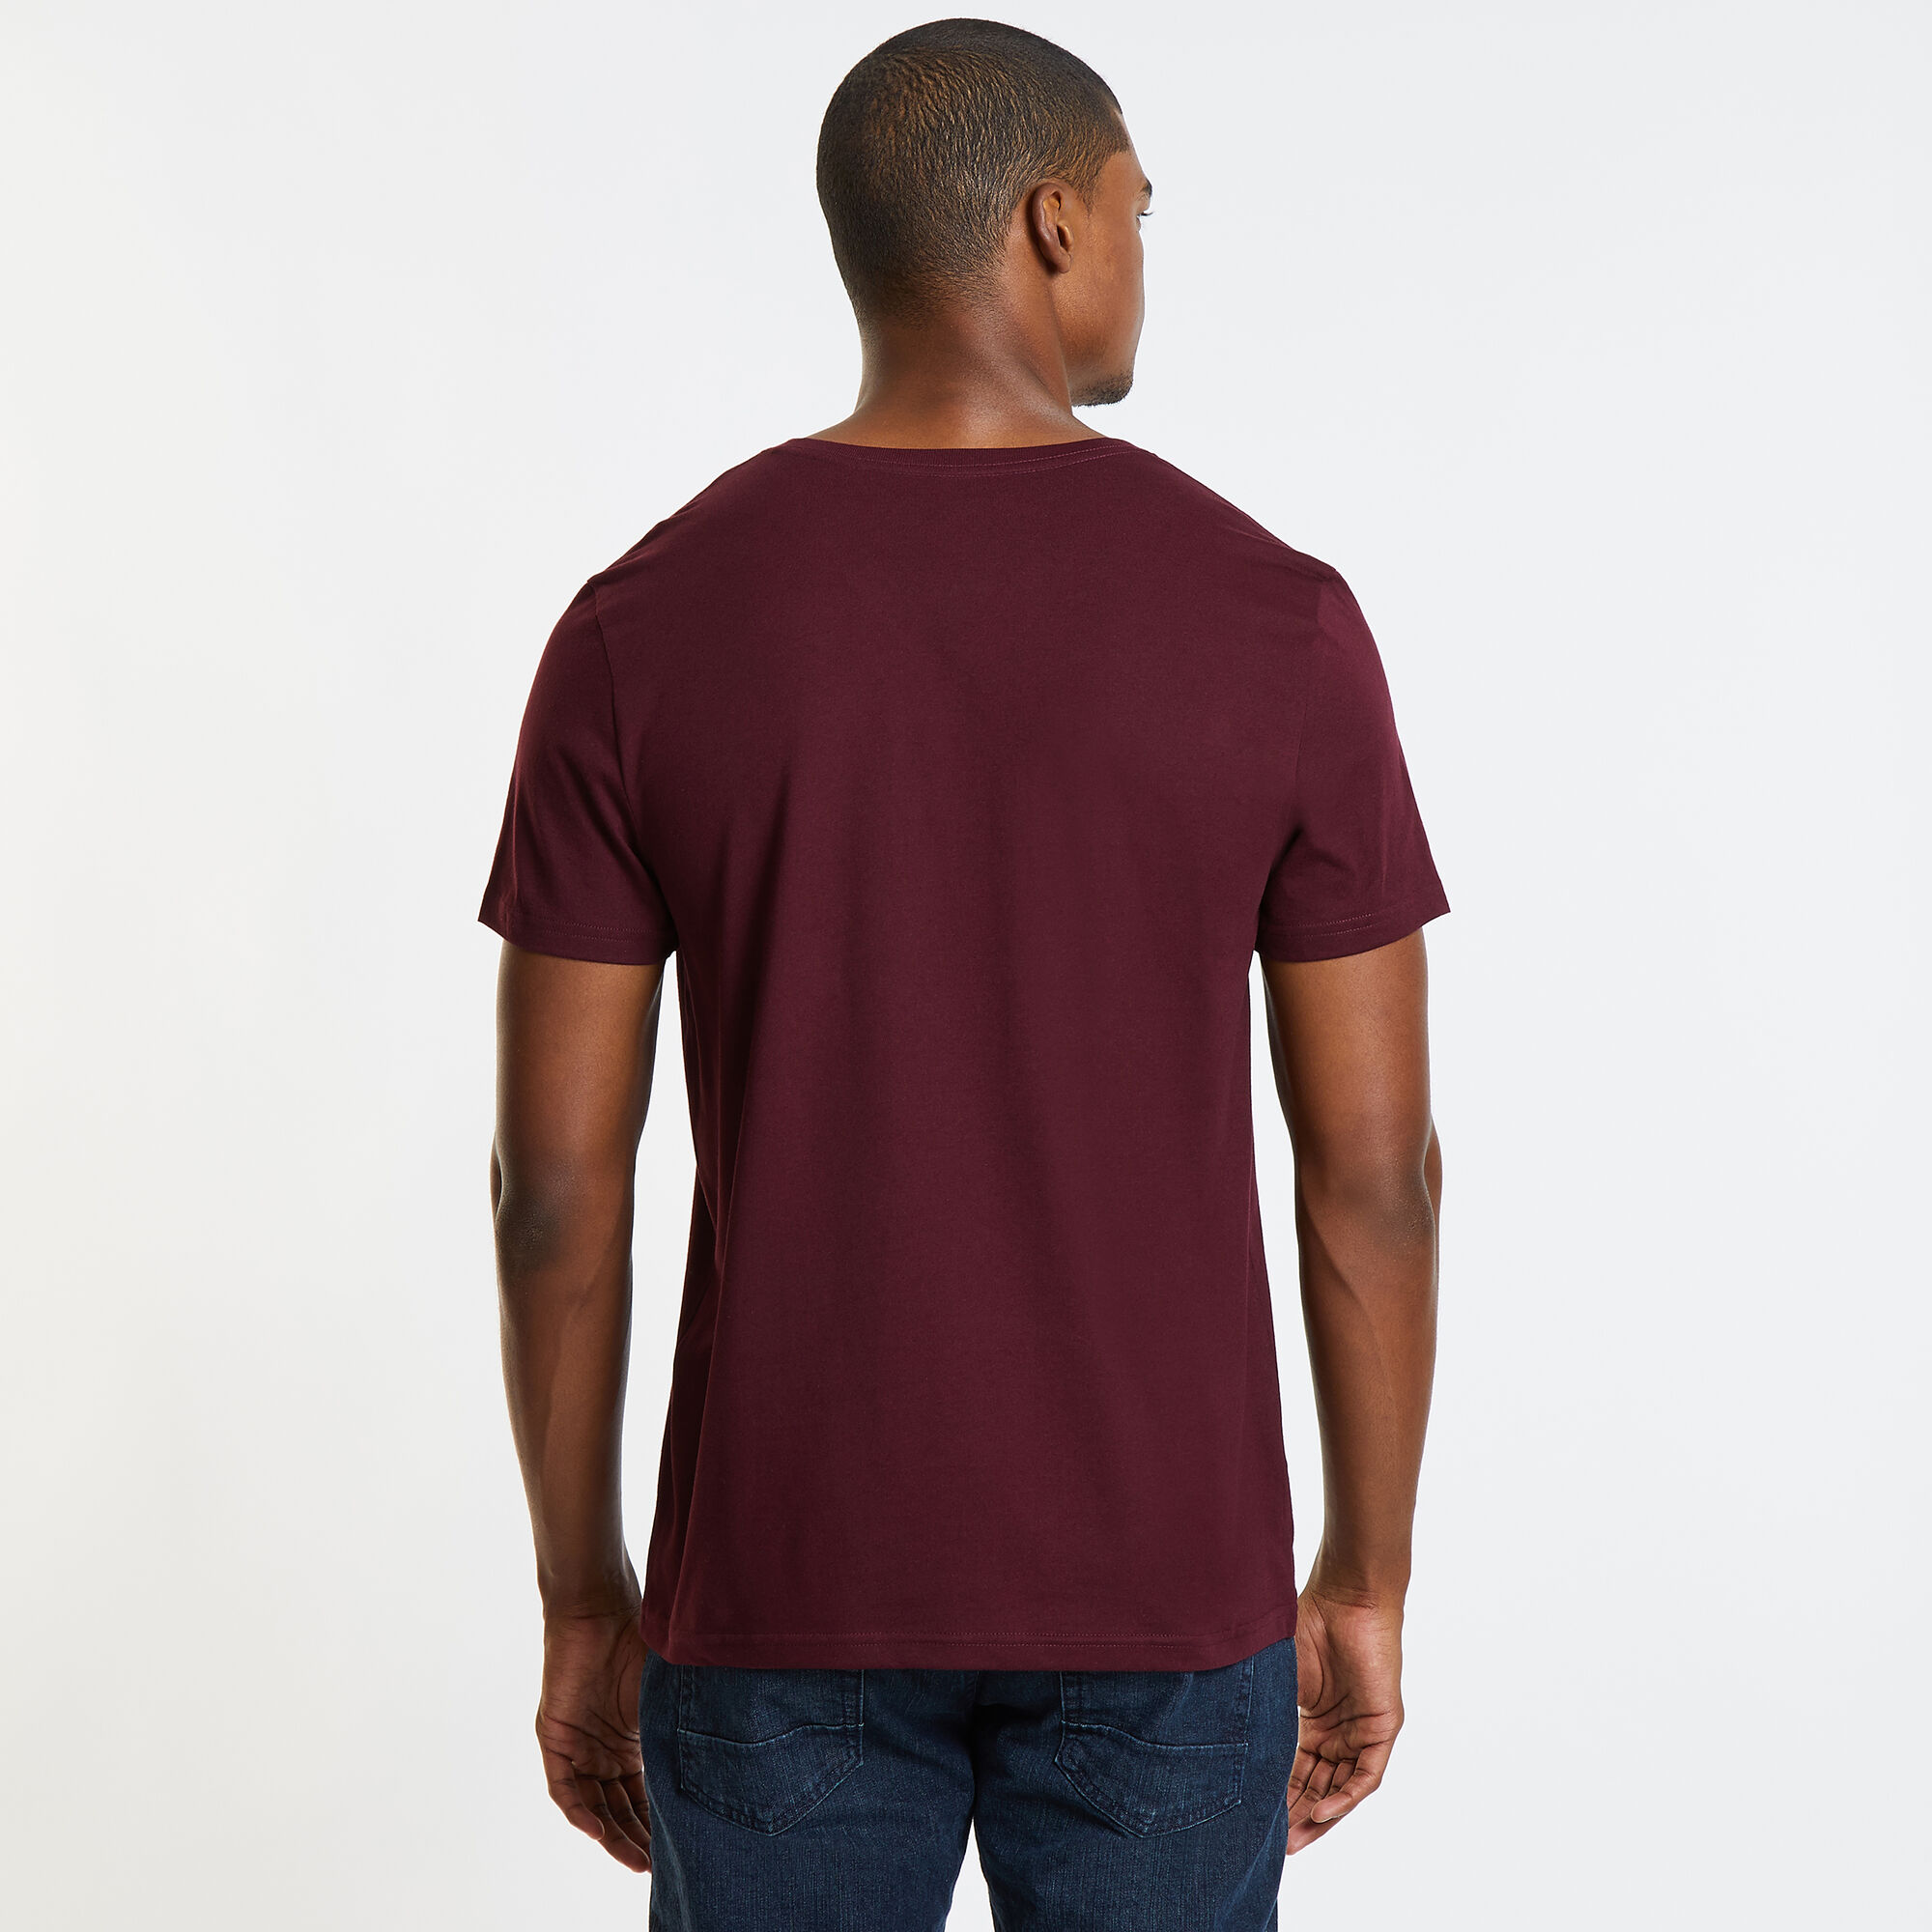 Nautica-Mens-V-Neck-Short-Sleeve-T-Shirt thumbnail 52